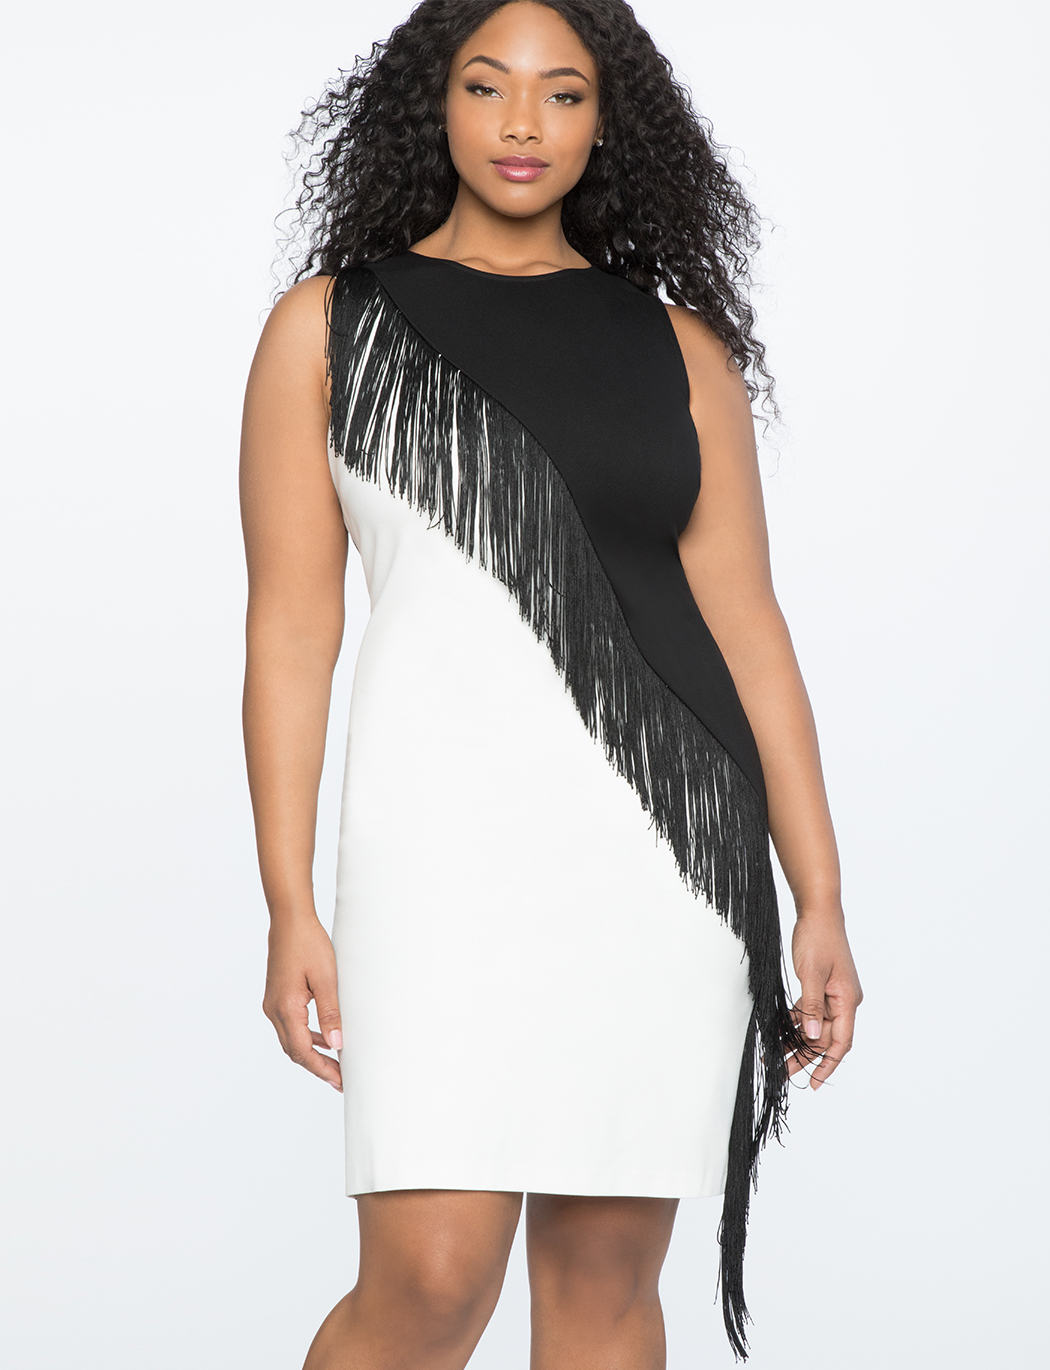 Colorblocked Dress with Fringe | Women\'s Plus Size Dresses | ELOQUII